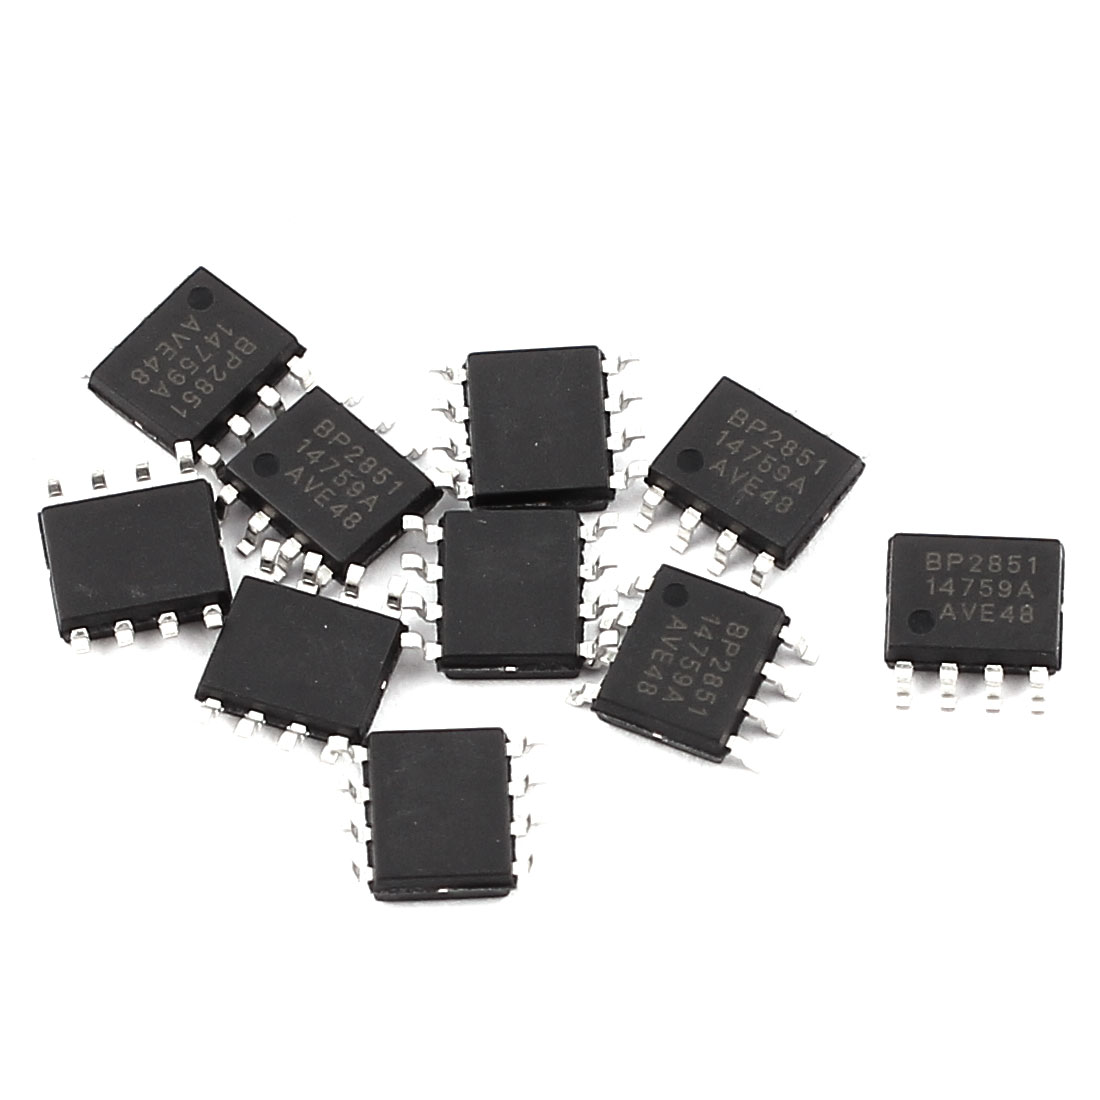 10Pcs BP2851 SOP-8 SMD SMT Type PCB Surface Mount LED Driver Circuit Module Integrated Circuit IC Chip